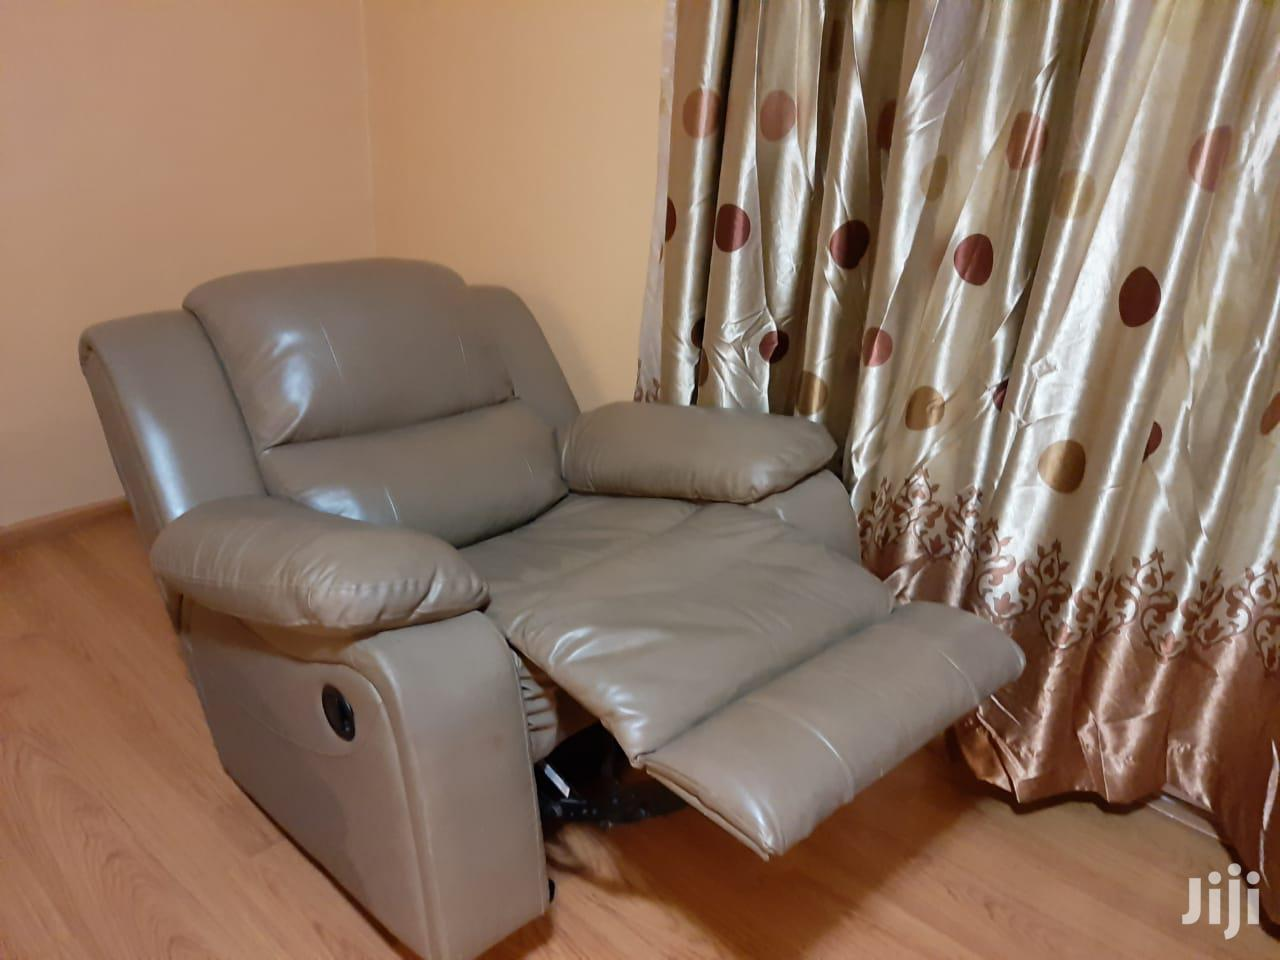 7 Seater Recliner Leather Sofas | Furniture for sale in Nairobi Central, Nairobi, Kenya